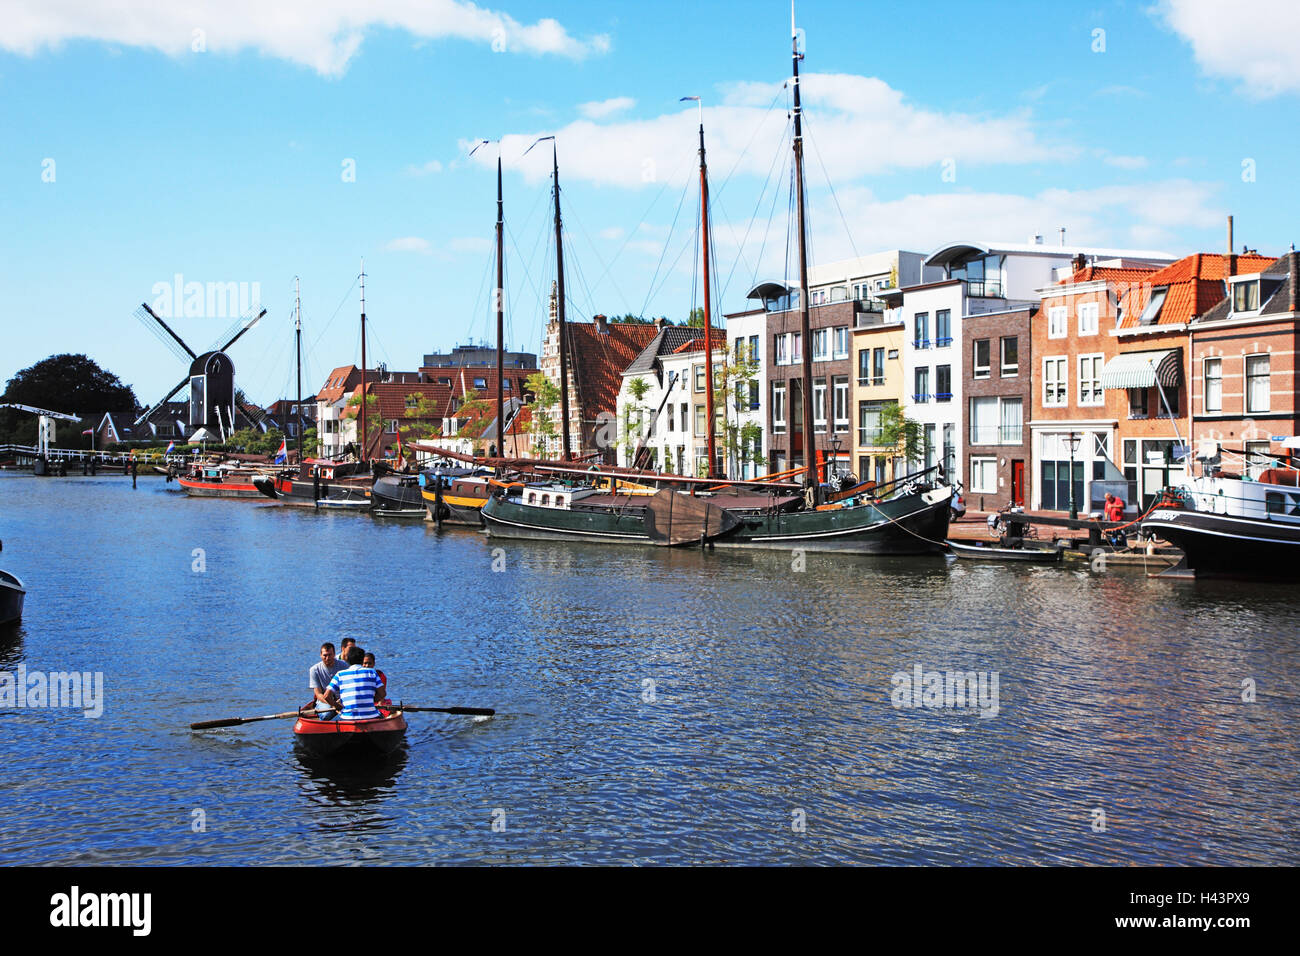 The Netherlands, ailments, town view, harbour, boots, - Stock Image